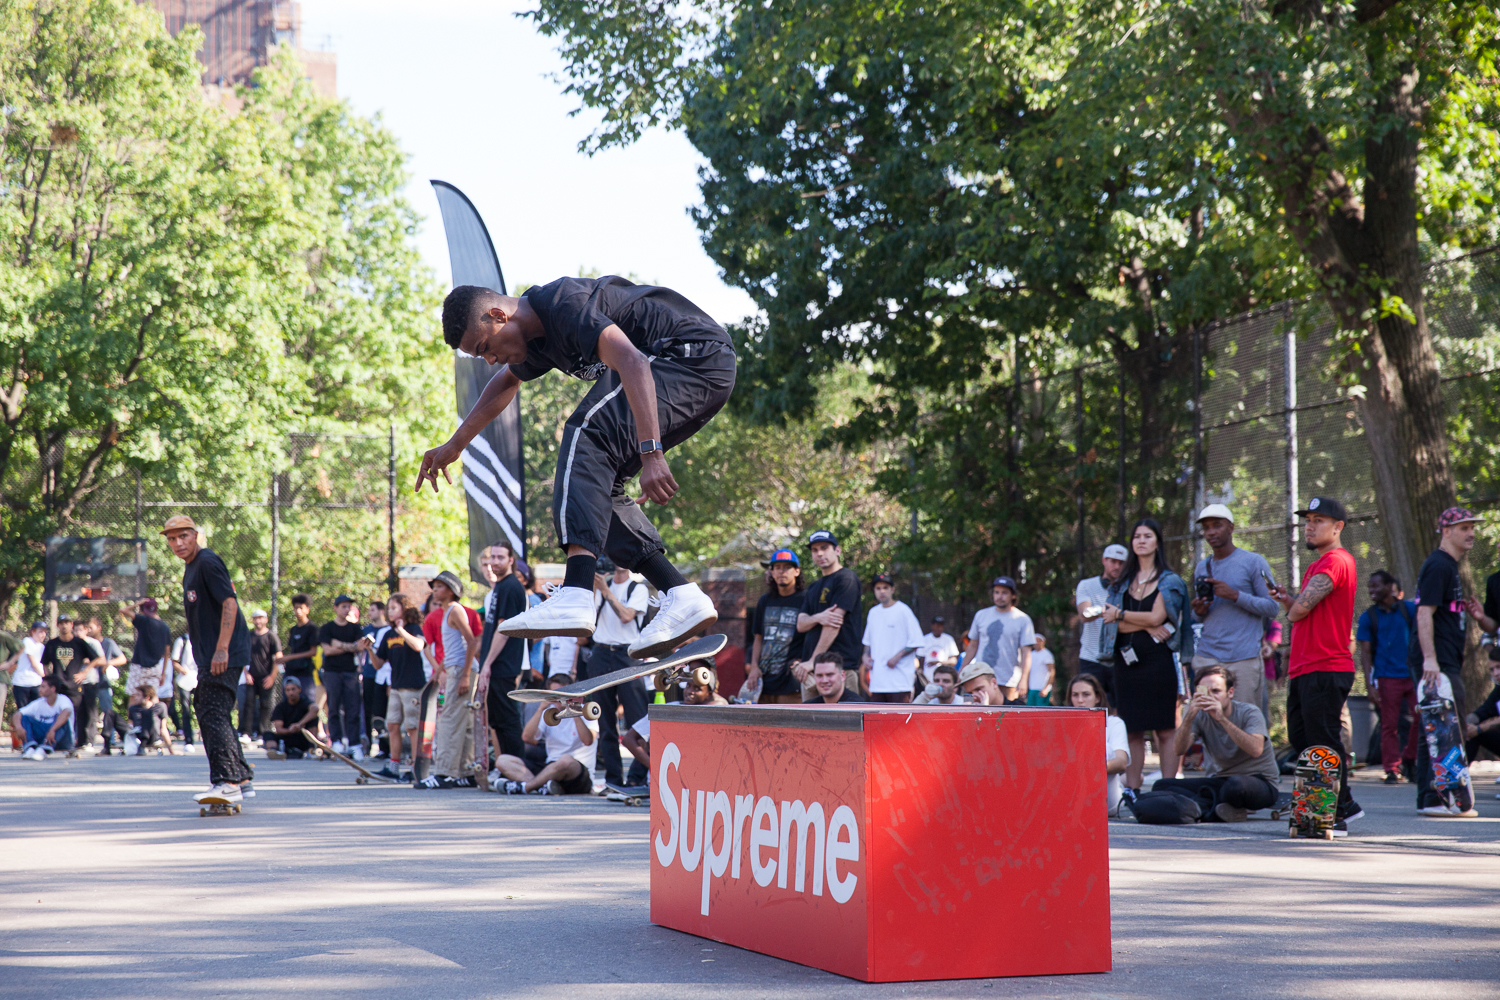 Tyshawn, kickflip backside tailslide on Supreme's box.